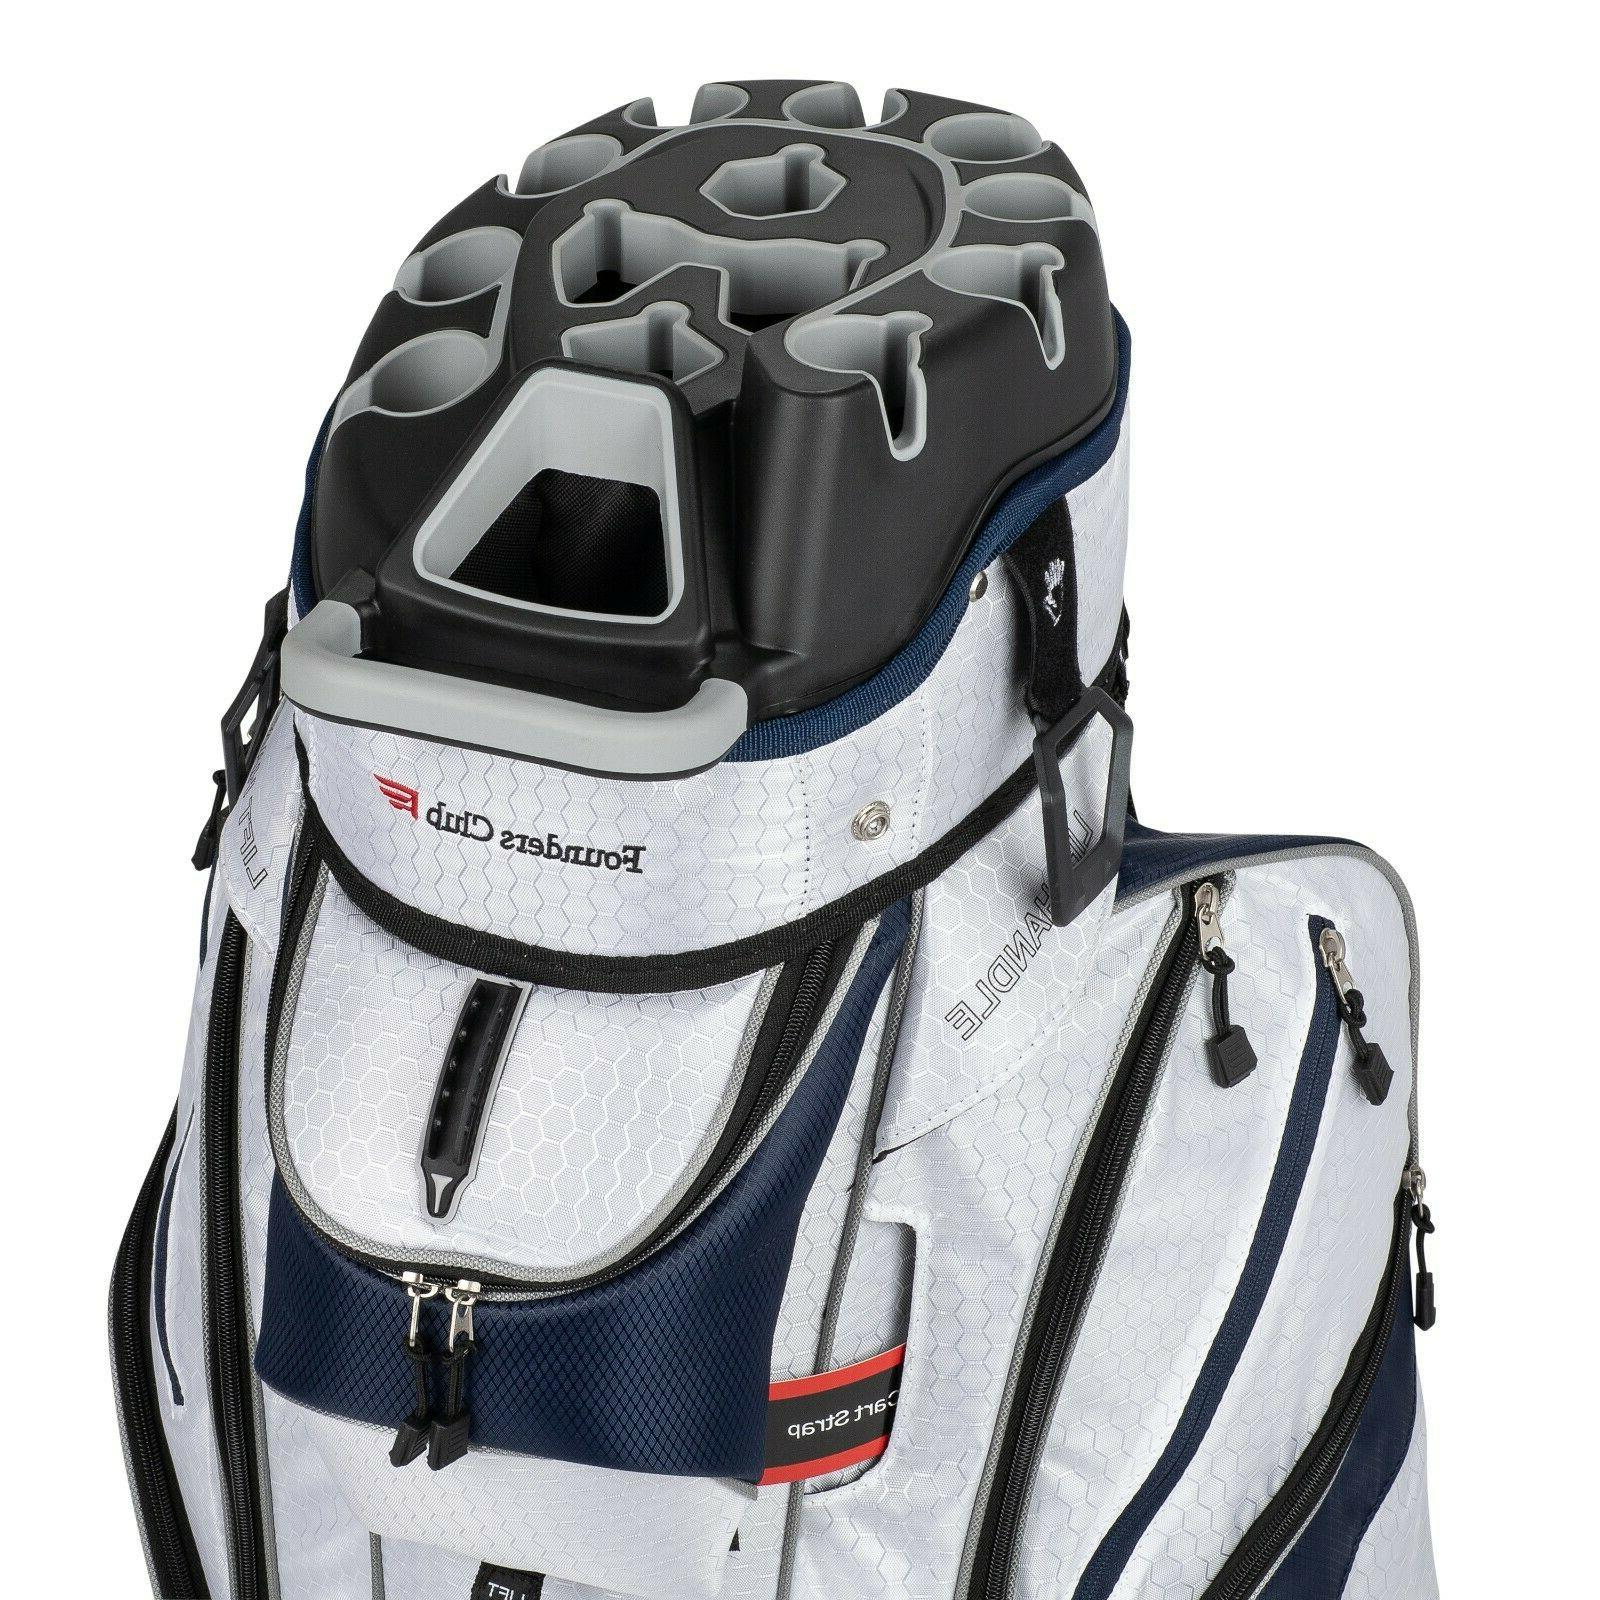 Founders 3G Way Organizer Top Golf Cart Bag with Full Length